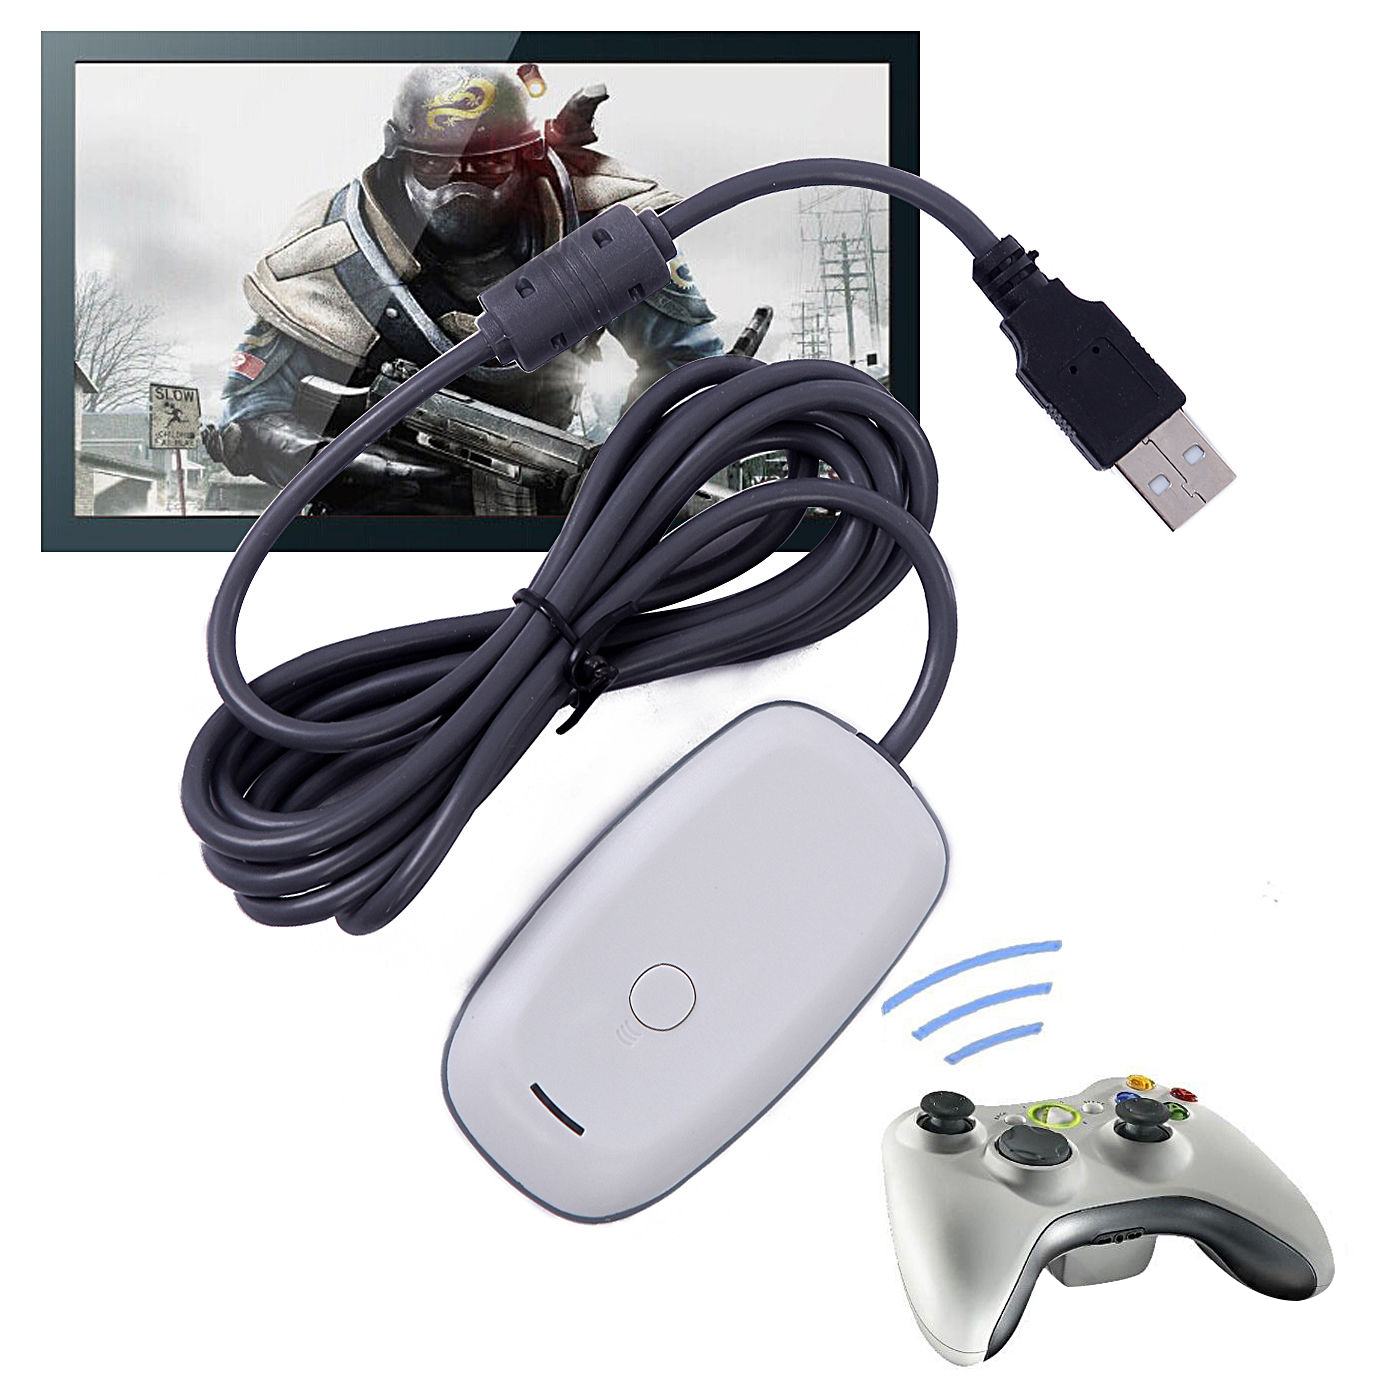 Xbox 360 controller pc adapter